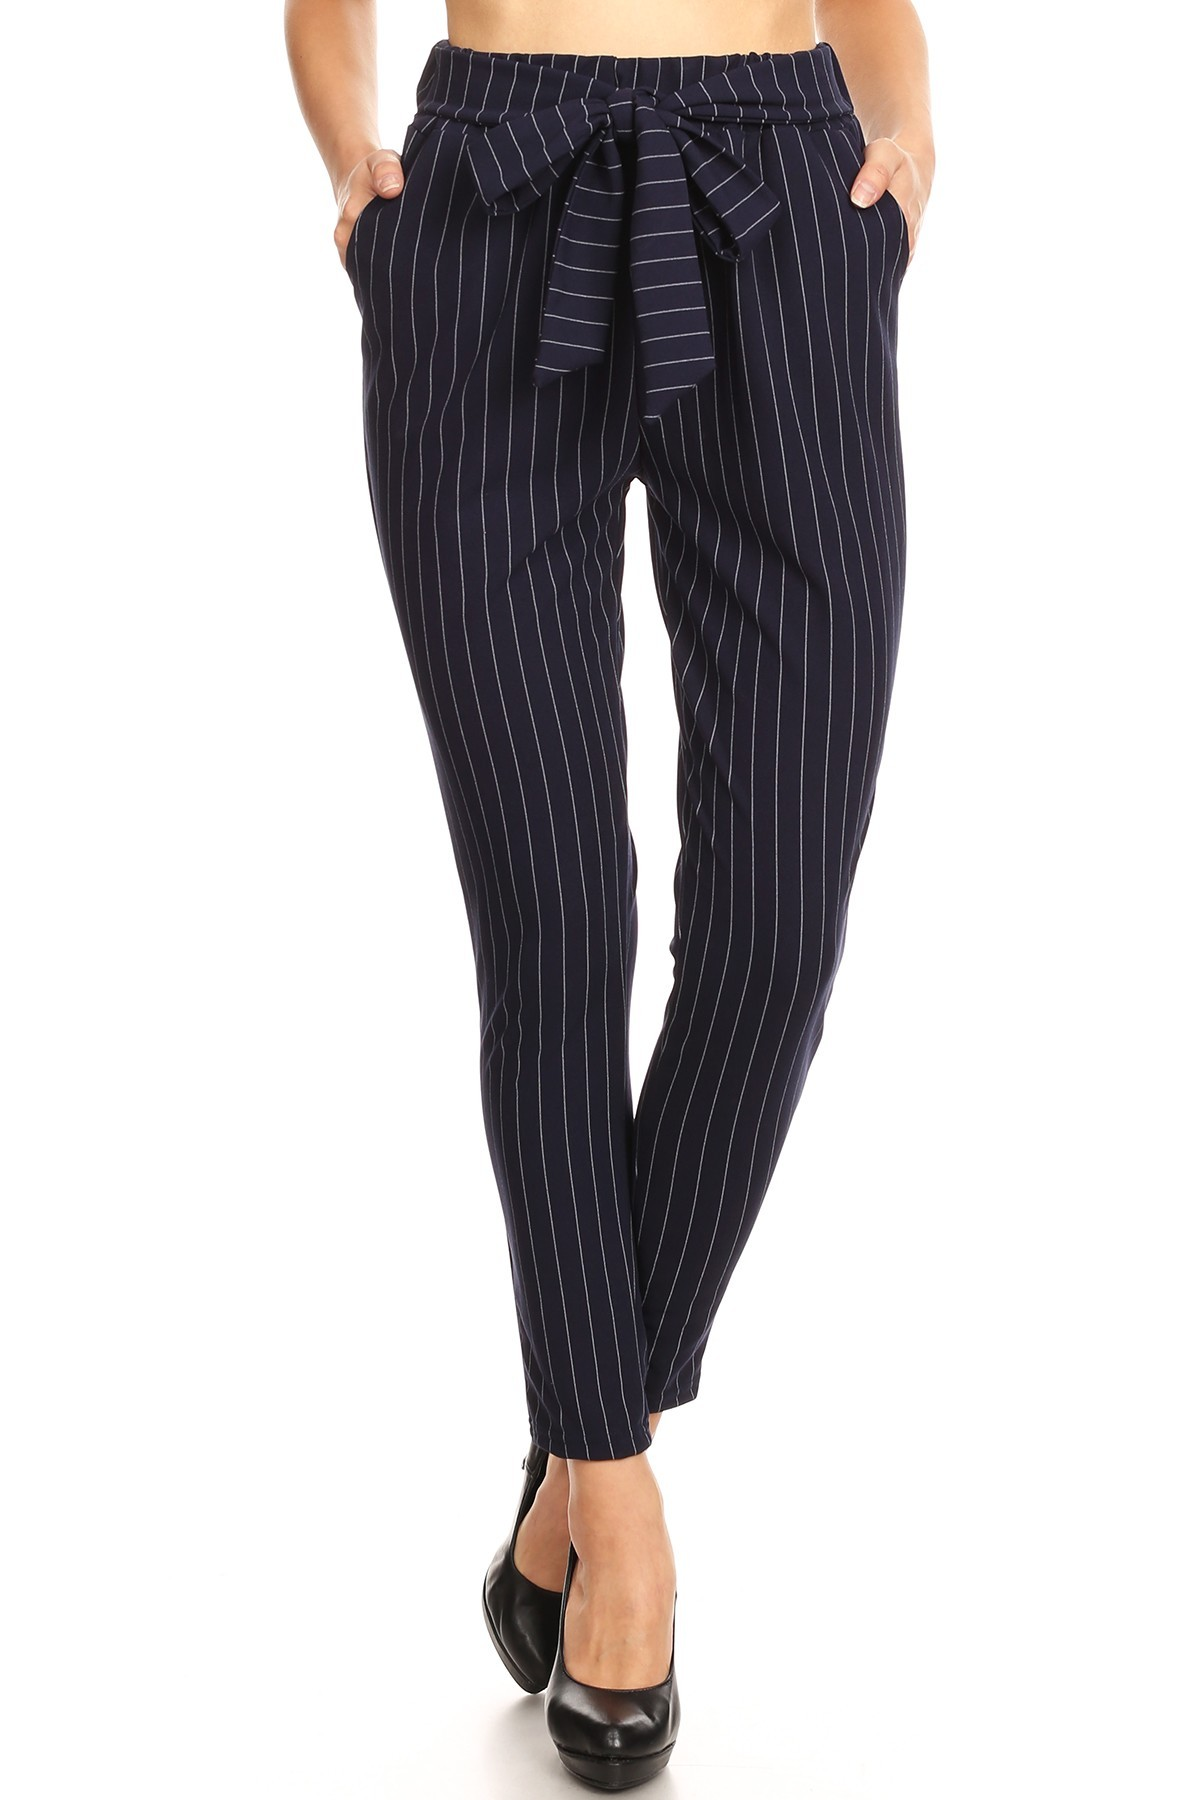 NAVY/WHITE SEMI HAREM TWILL KNIT PANTS W/ FRONT SELF TIE#9PNT13-SP28A